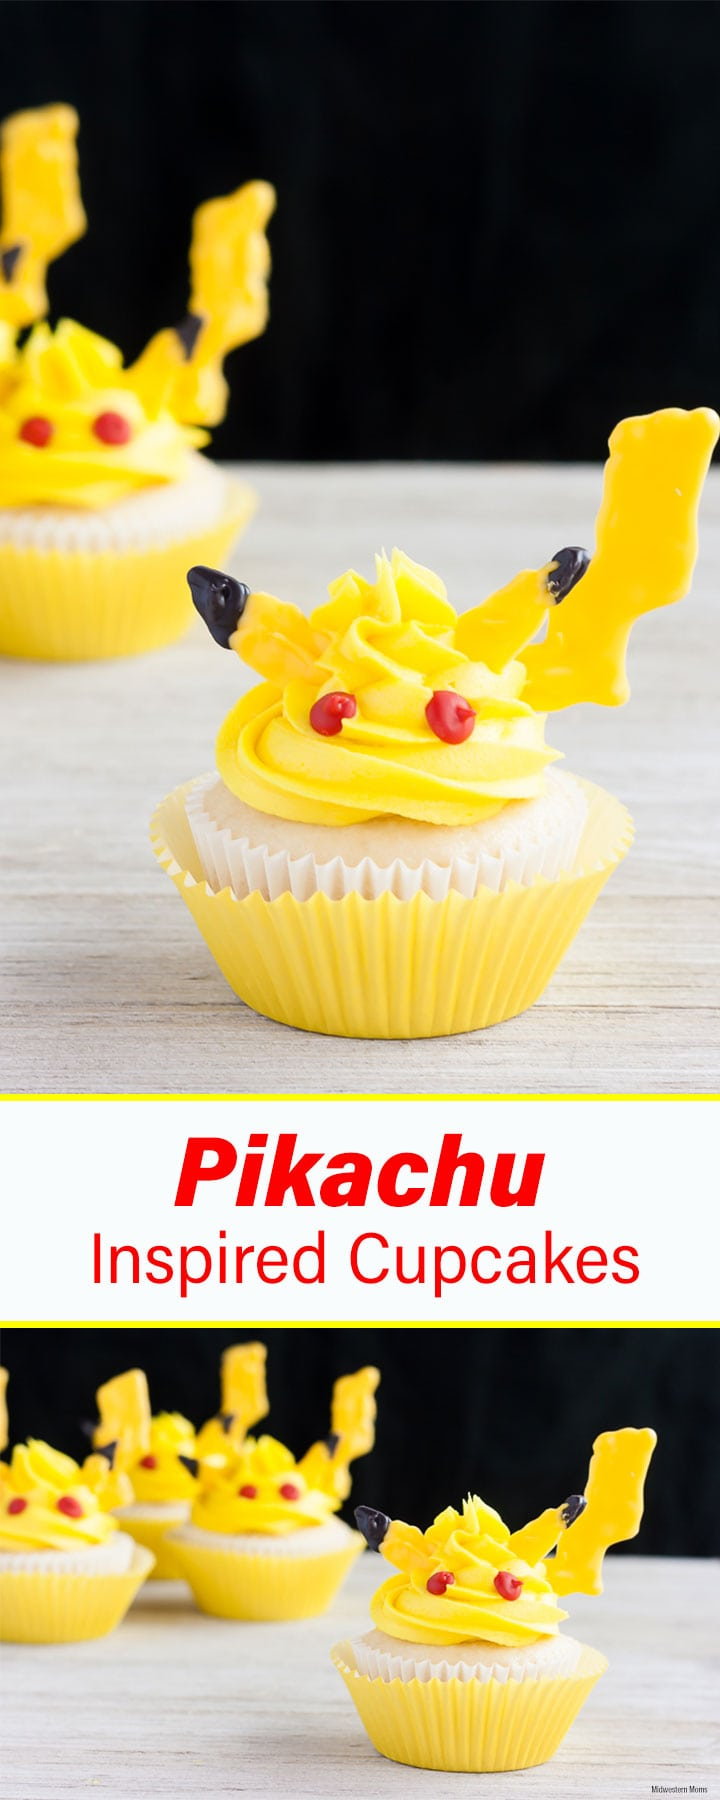 Adorable Pikachu cupcakes that you can make! These cupcakes are made from a doctored cake mix and topped with buttercream frosting and candy features! Perfect for a Pokemon themed birthday party!